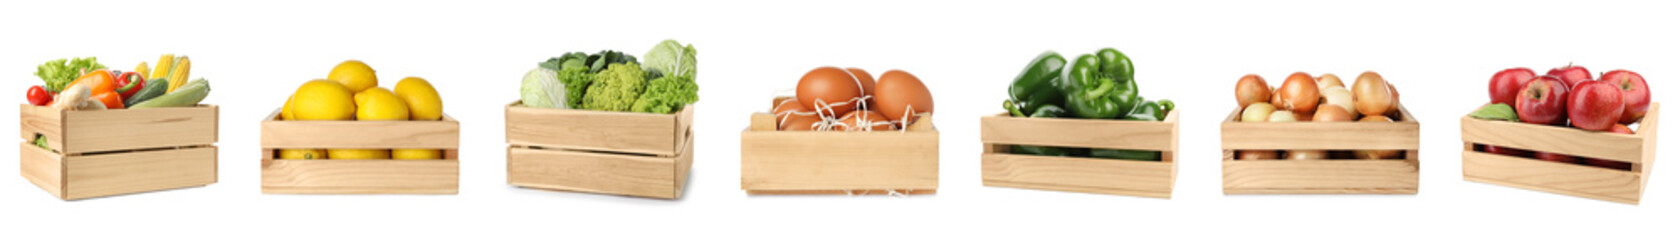 Autocollant pour porte Légumes frais Set of wooden crates with fruits, vegetables and eggs on white background